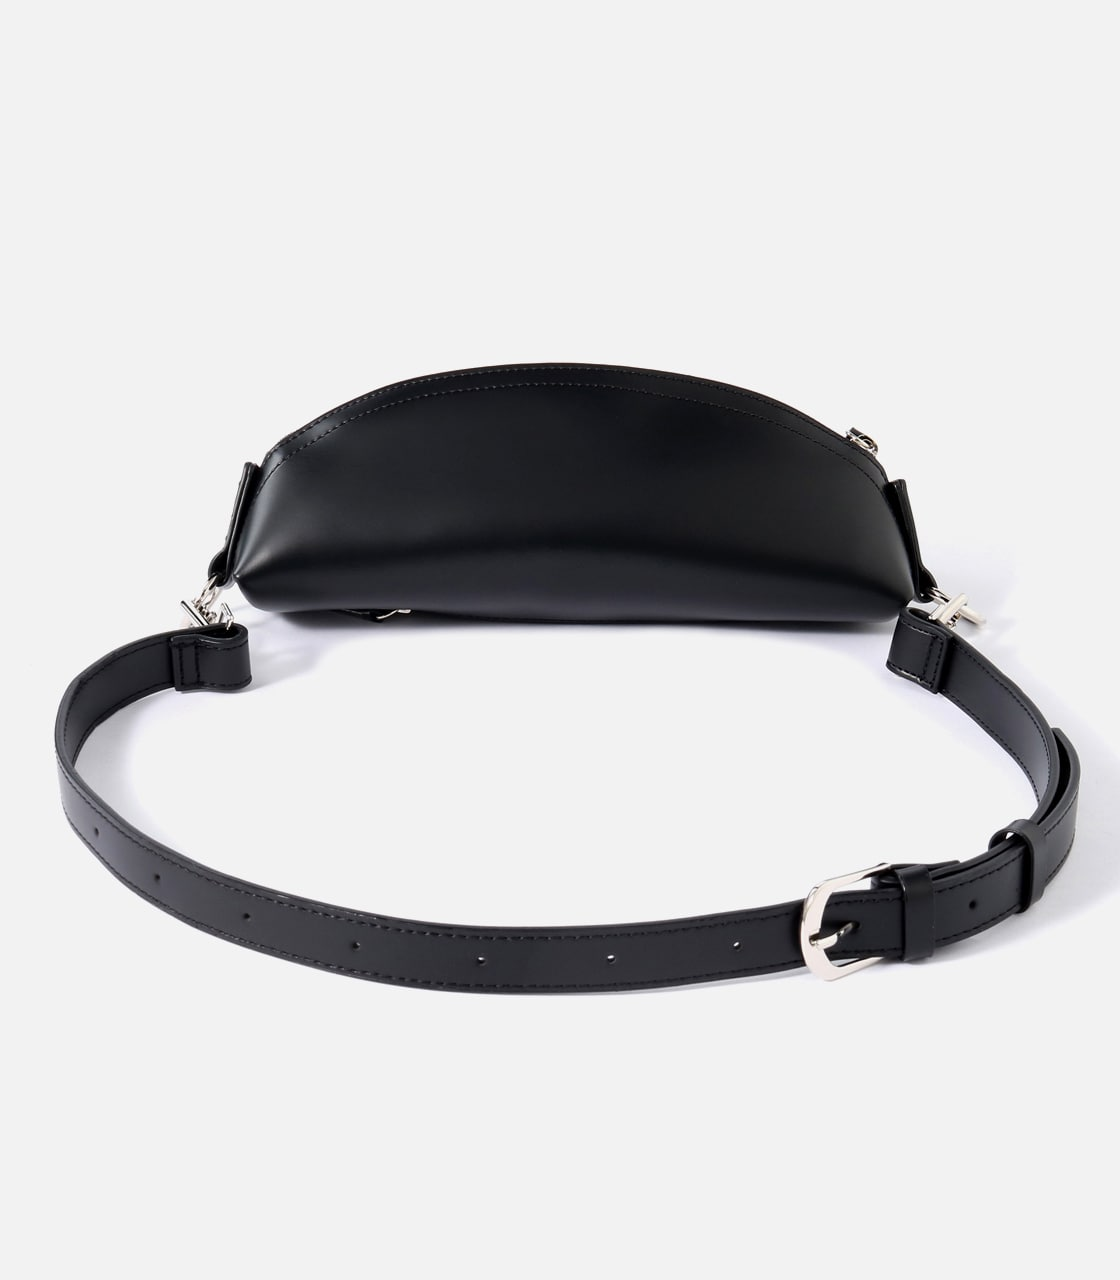 【AZUL BY MOUSSY】FAKE LEATHER WAISTBAG 詳細画像 BLK 2